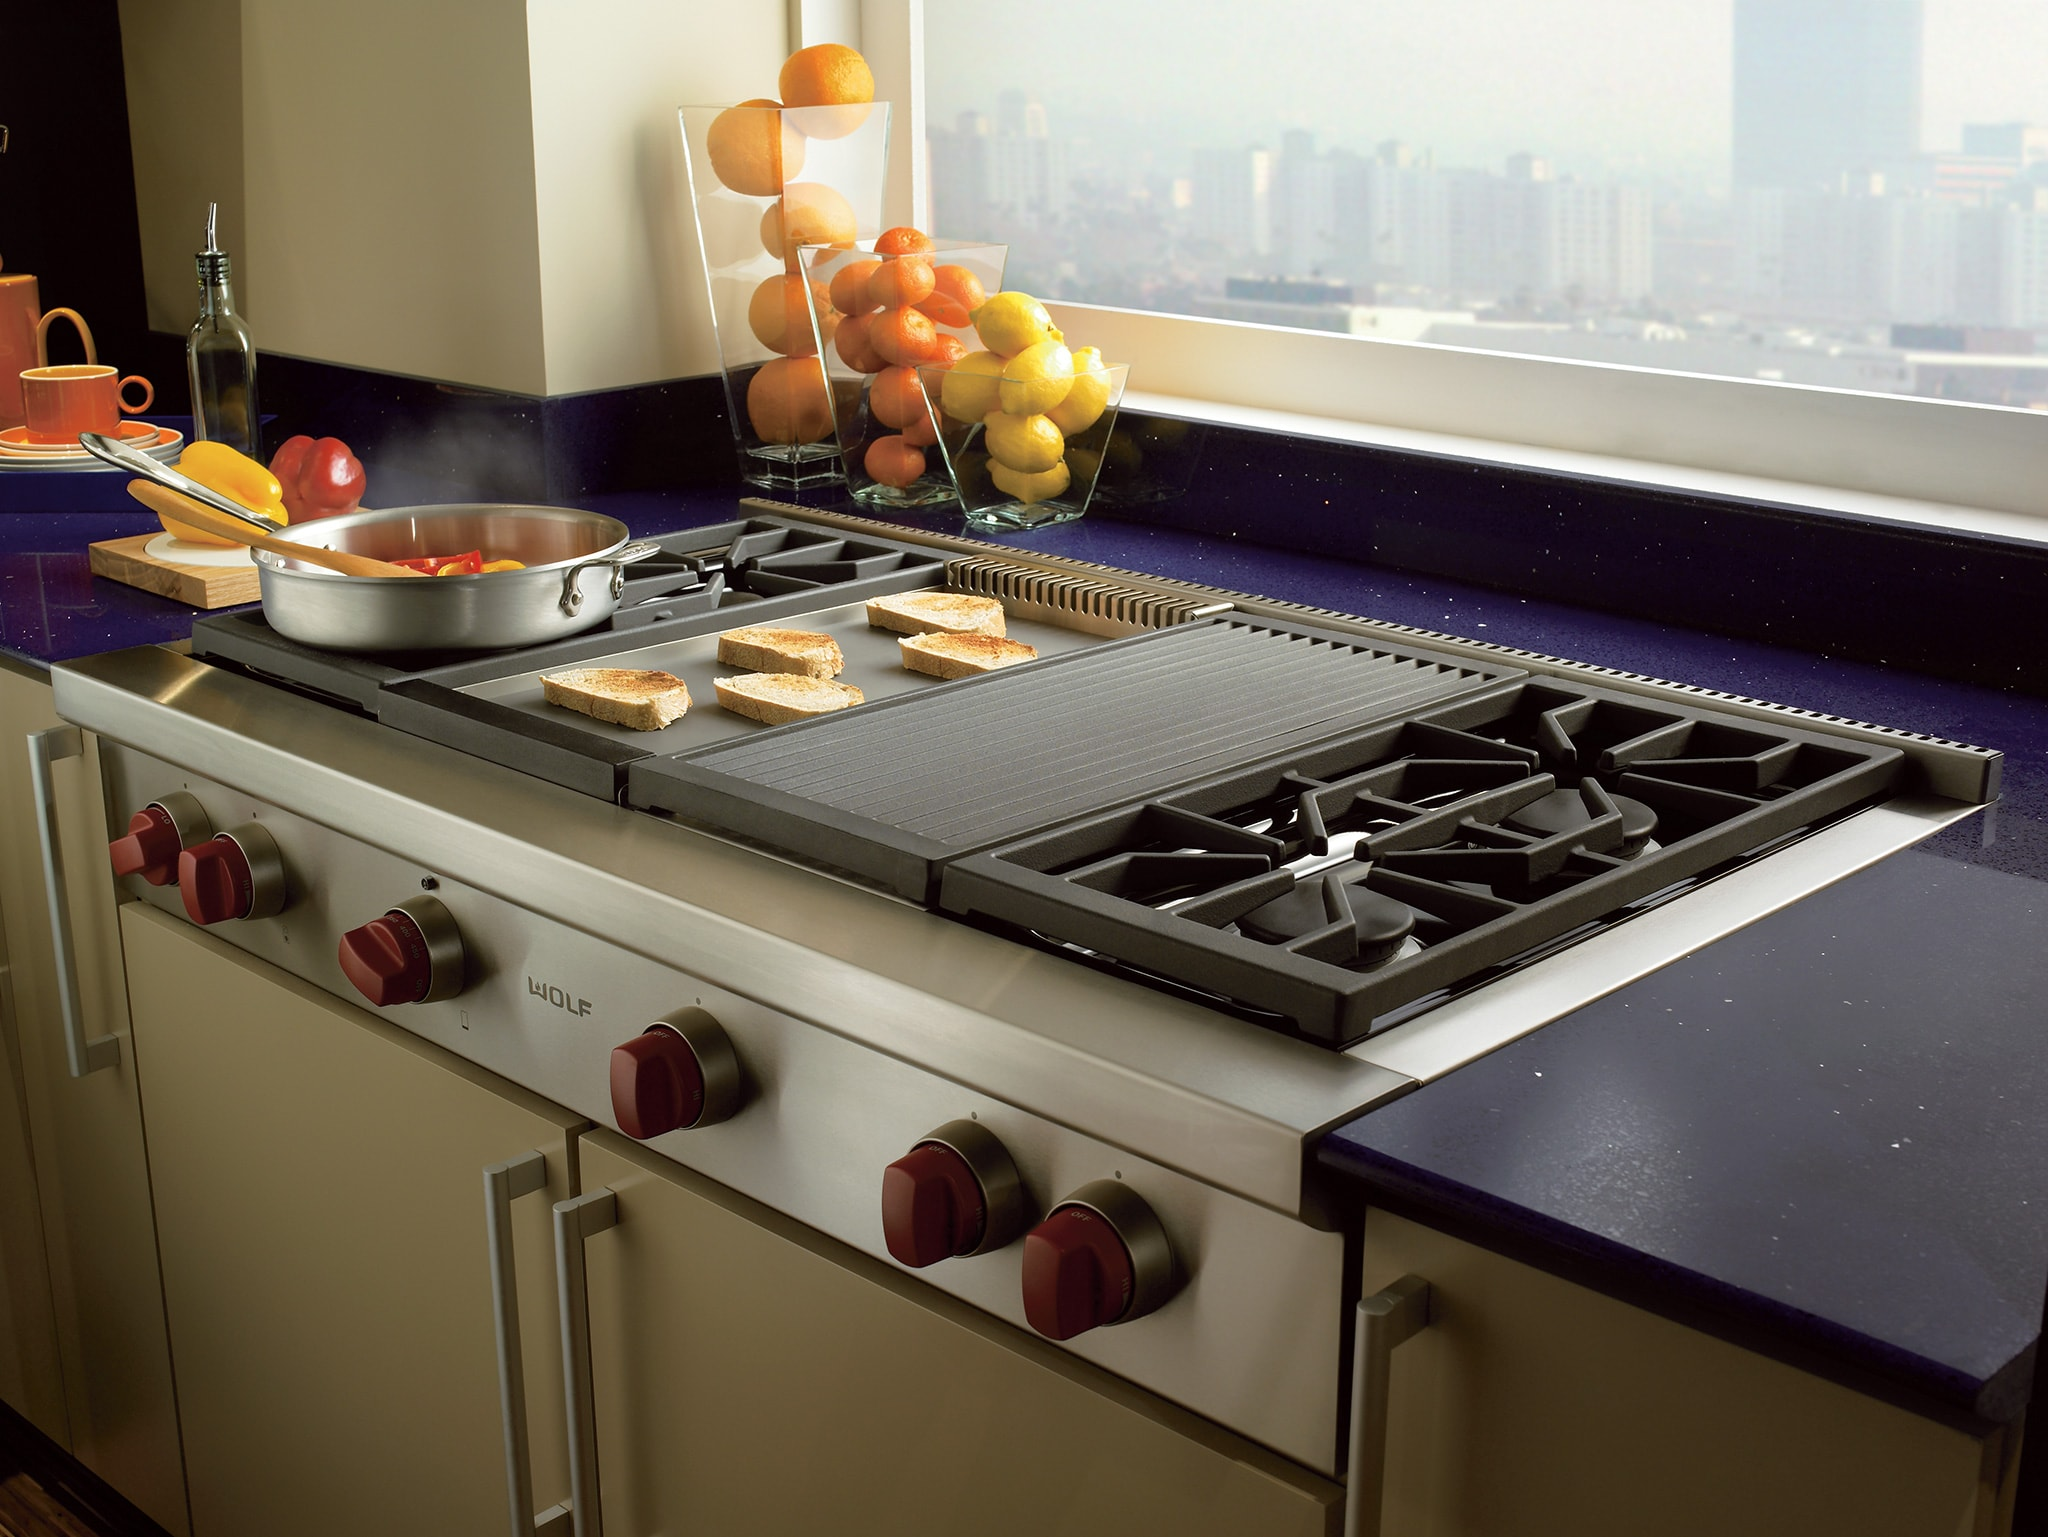 Superior Wolf Kitchen Appliances Prices #6: Wolf Rangetops Offering A Griddle Are Available In Units That Are At Least  36u201d Wide. The Wolf Griddle Is 15,000 BTU Infrared Gas. The Benefit To  Infrared Is ...